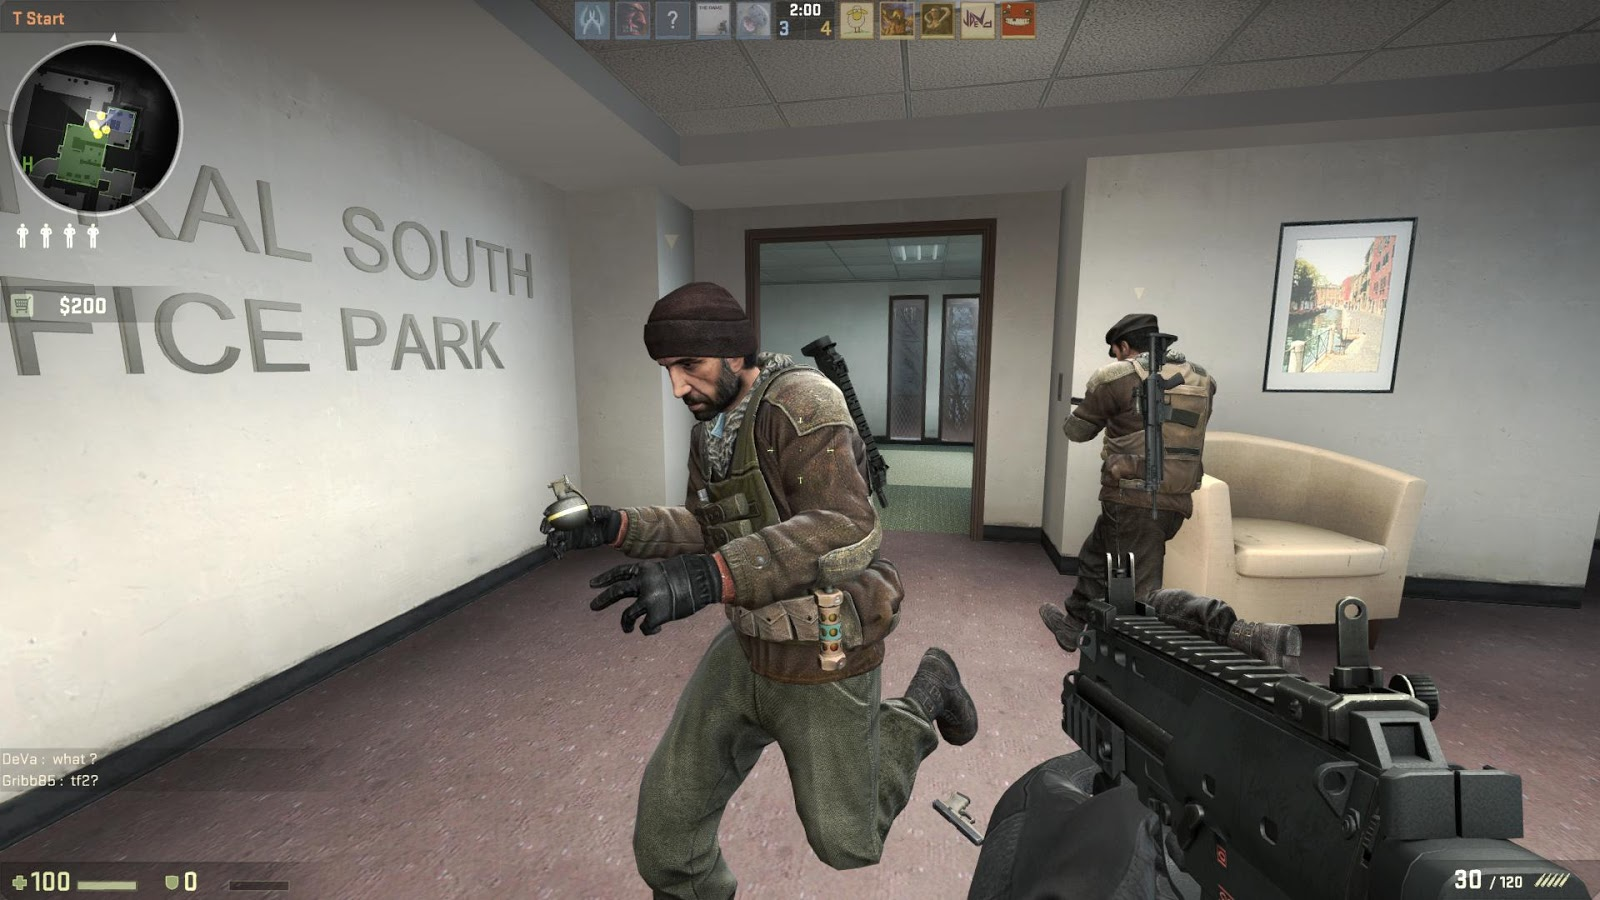 Download Counter Strike Global Offensive PC Compressed gameplay 1 www.giatbanget.blogspot.com